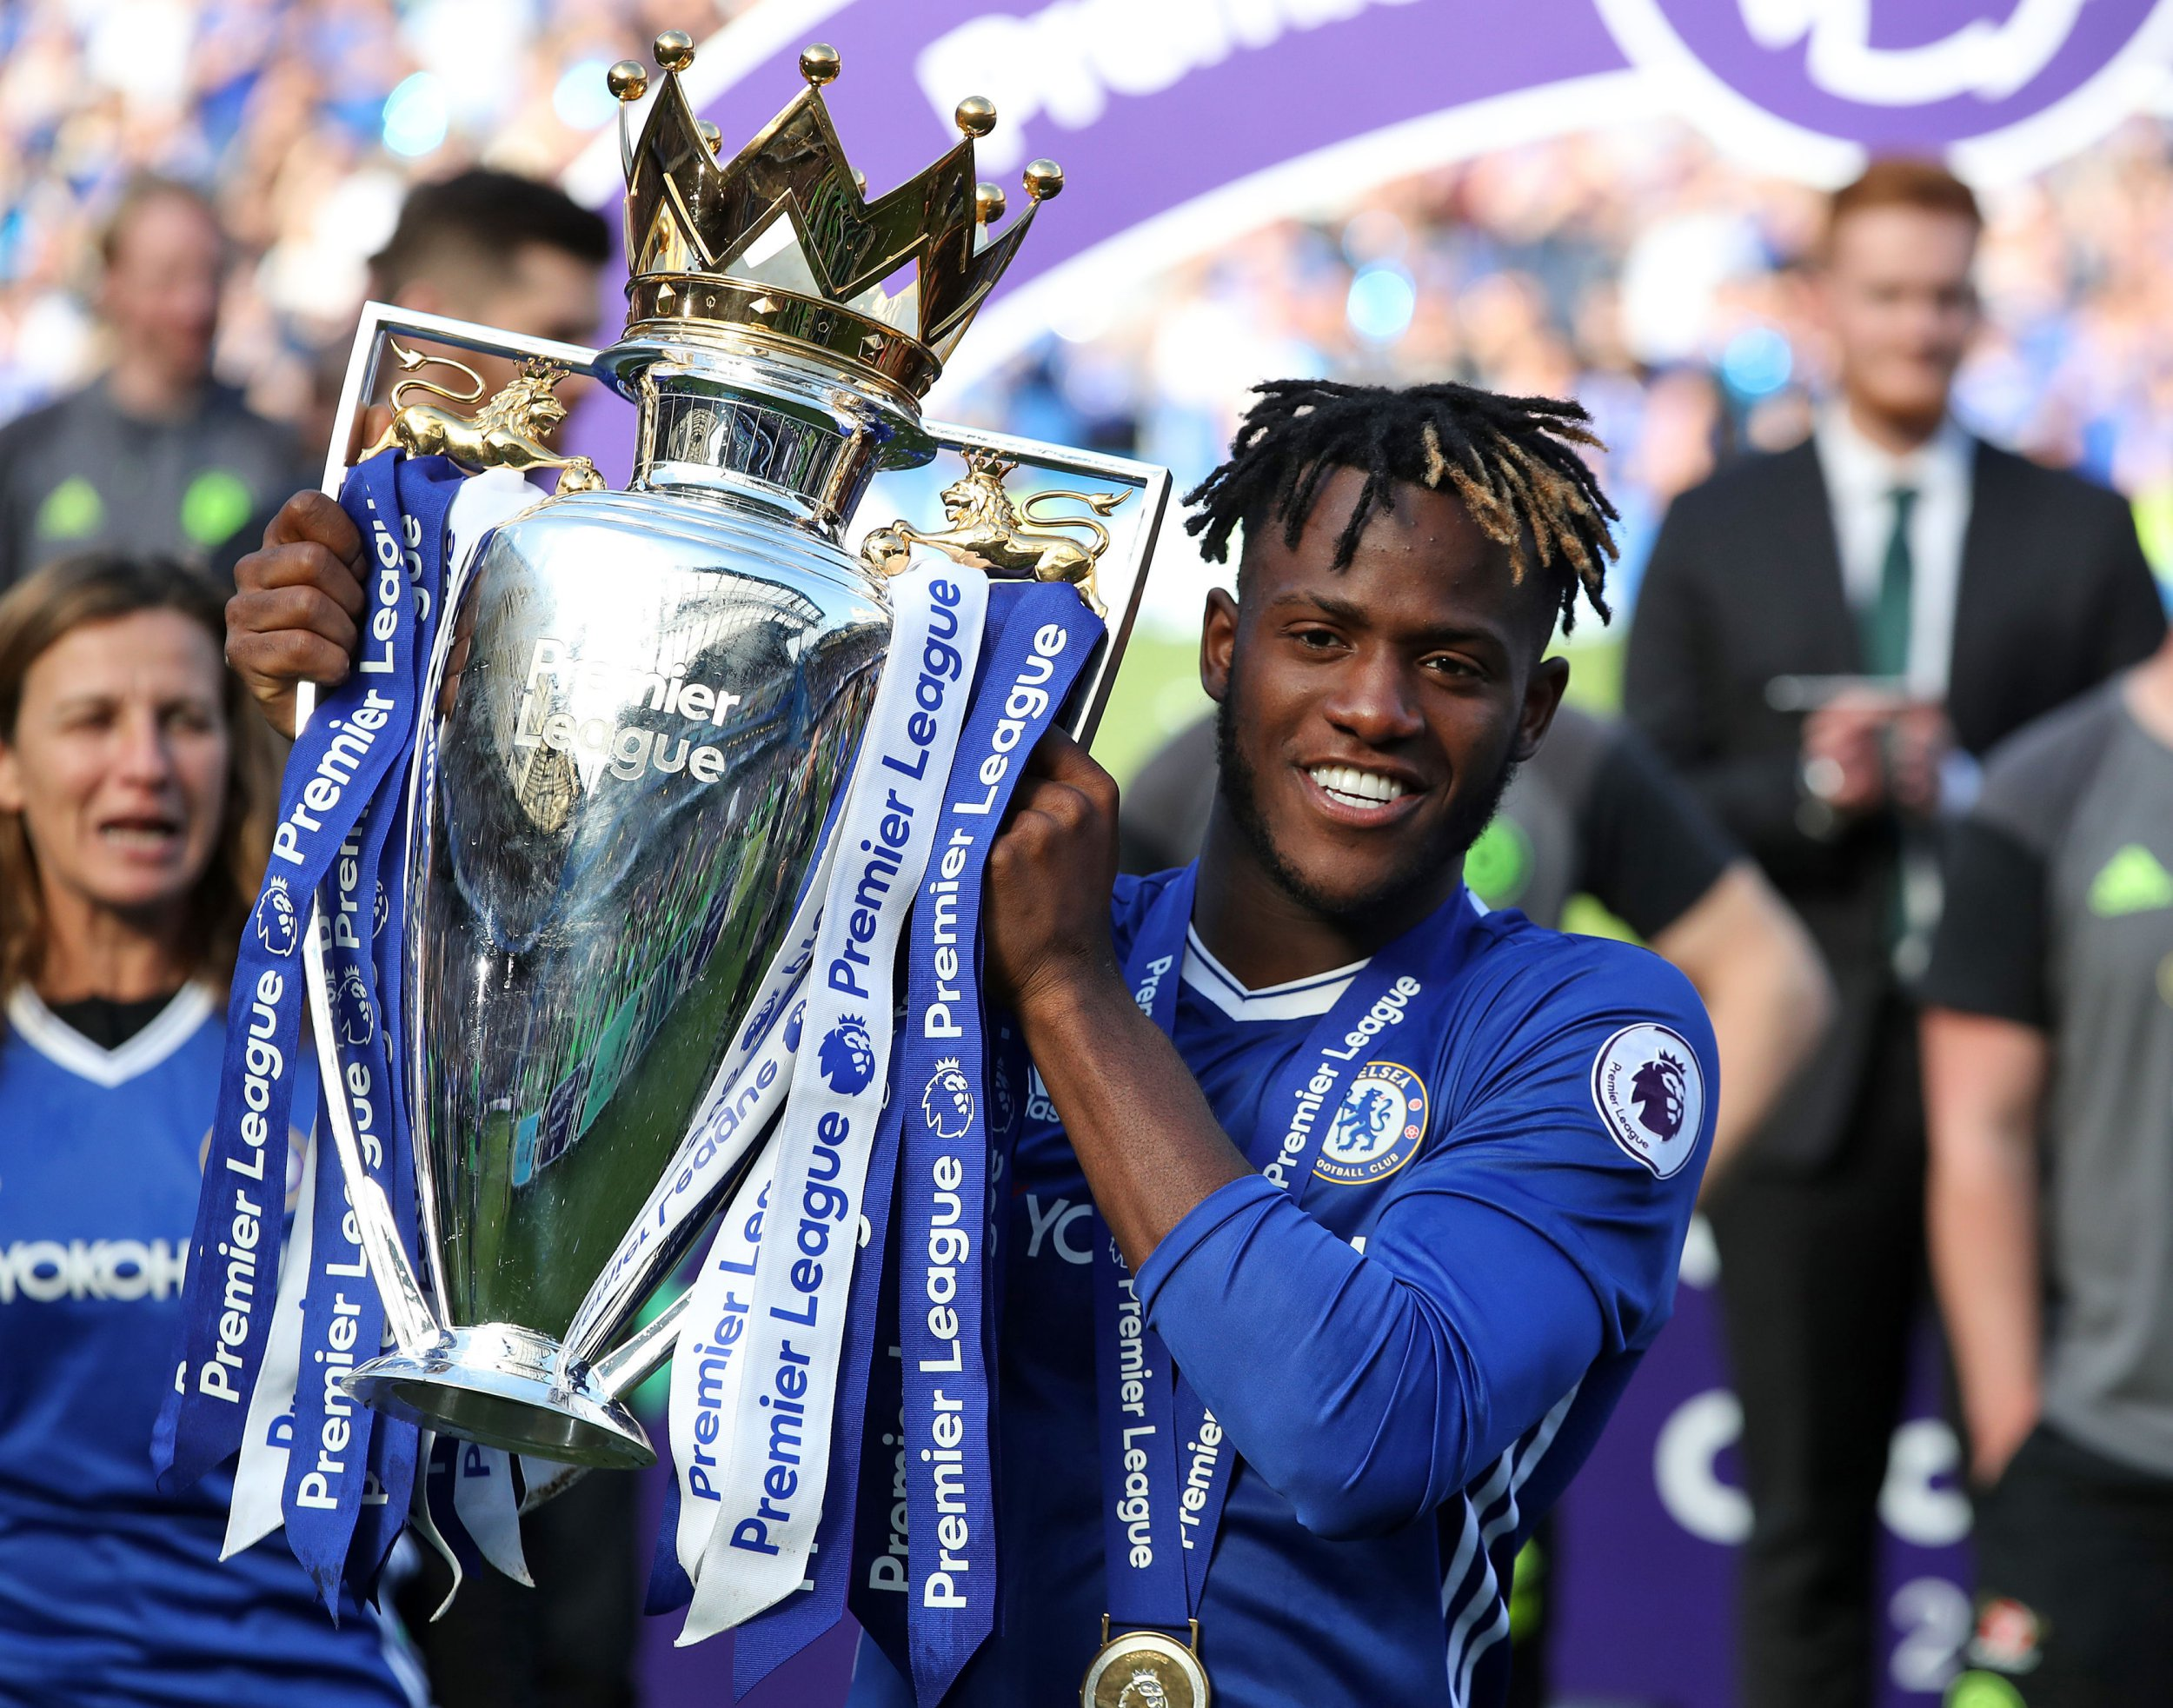 Tiemoue Bakayoko and Michy Batshuayi Twitter exchange sends Chelsea fans into a frenzy